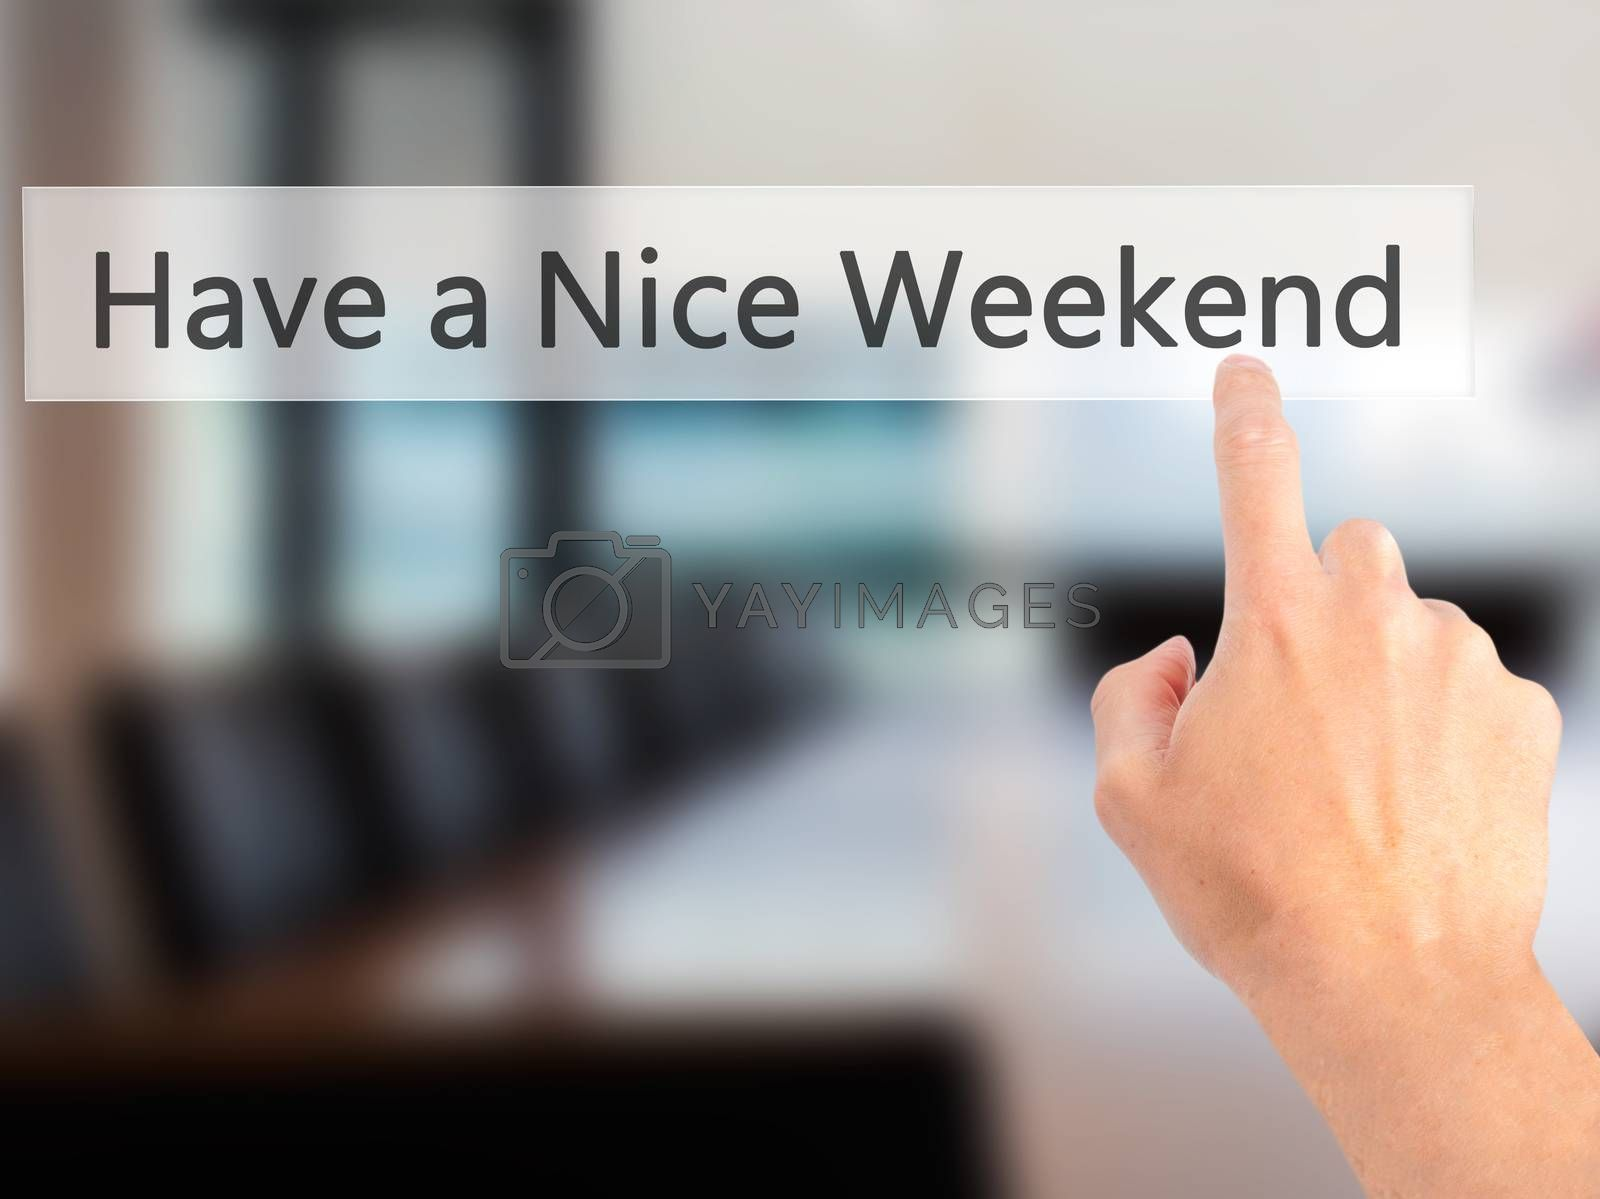 Have a Nice Weekend - Hand pressing a button on blurred backgrou by jackald